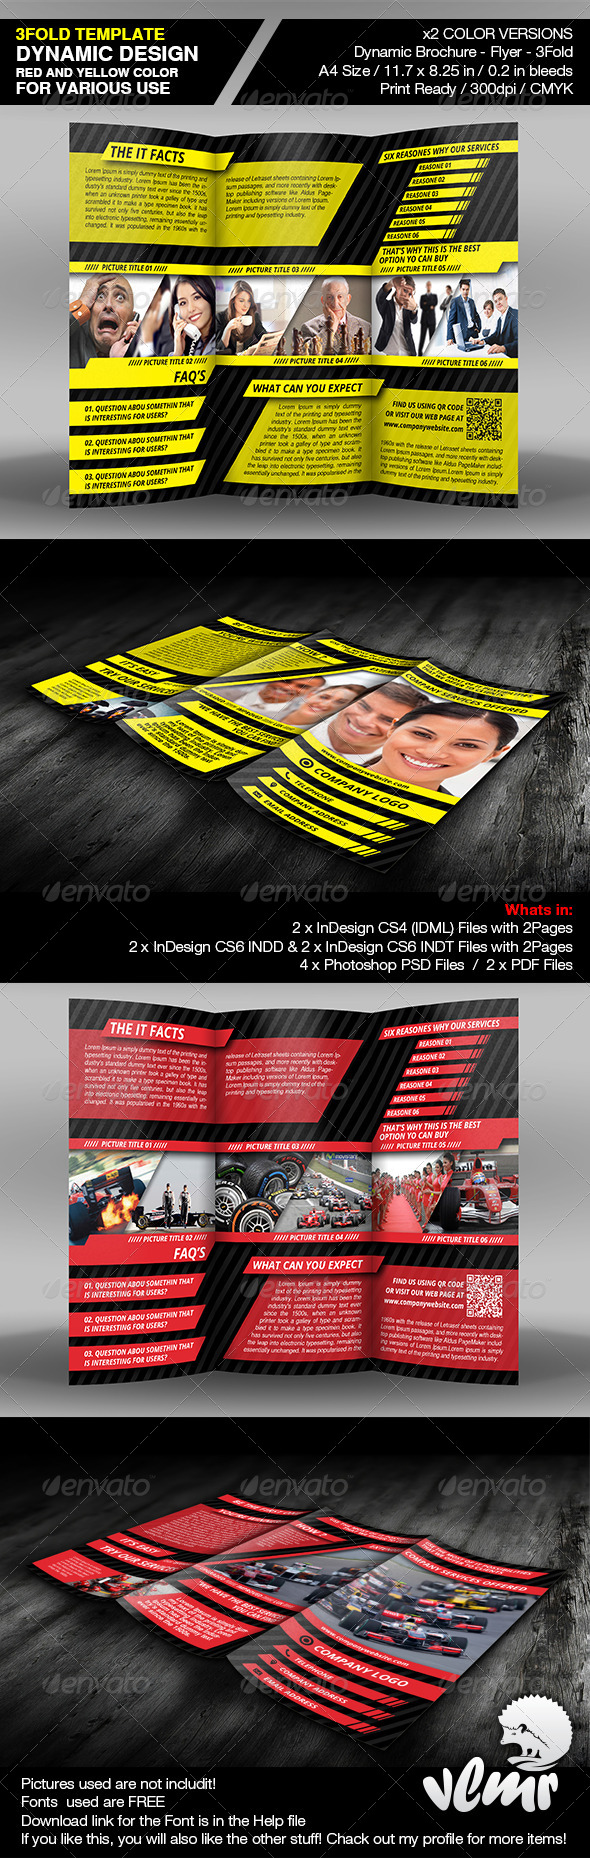 GraphicRiver Dynamic Brochure 3Fold Template 4728779